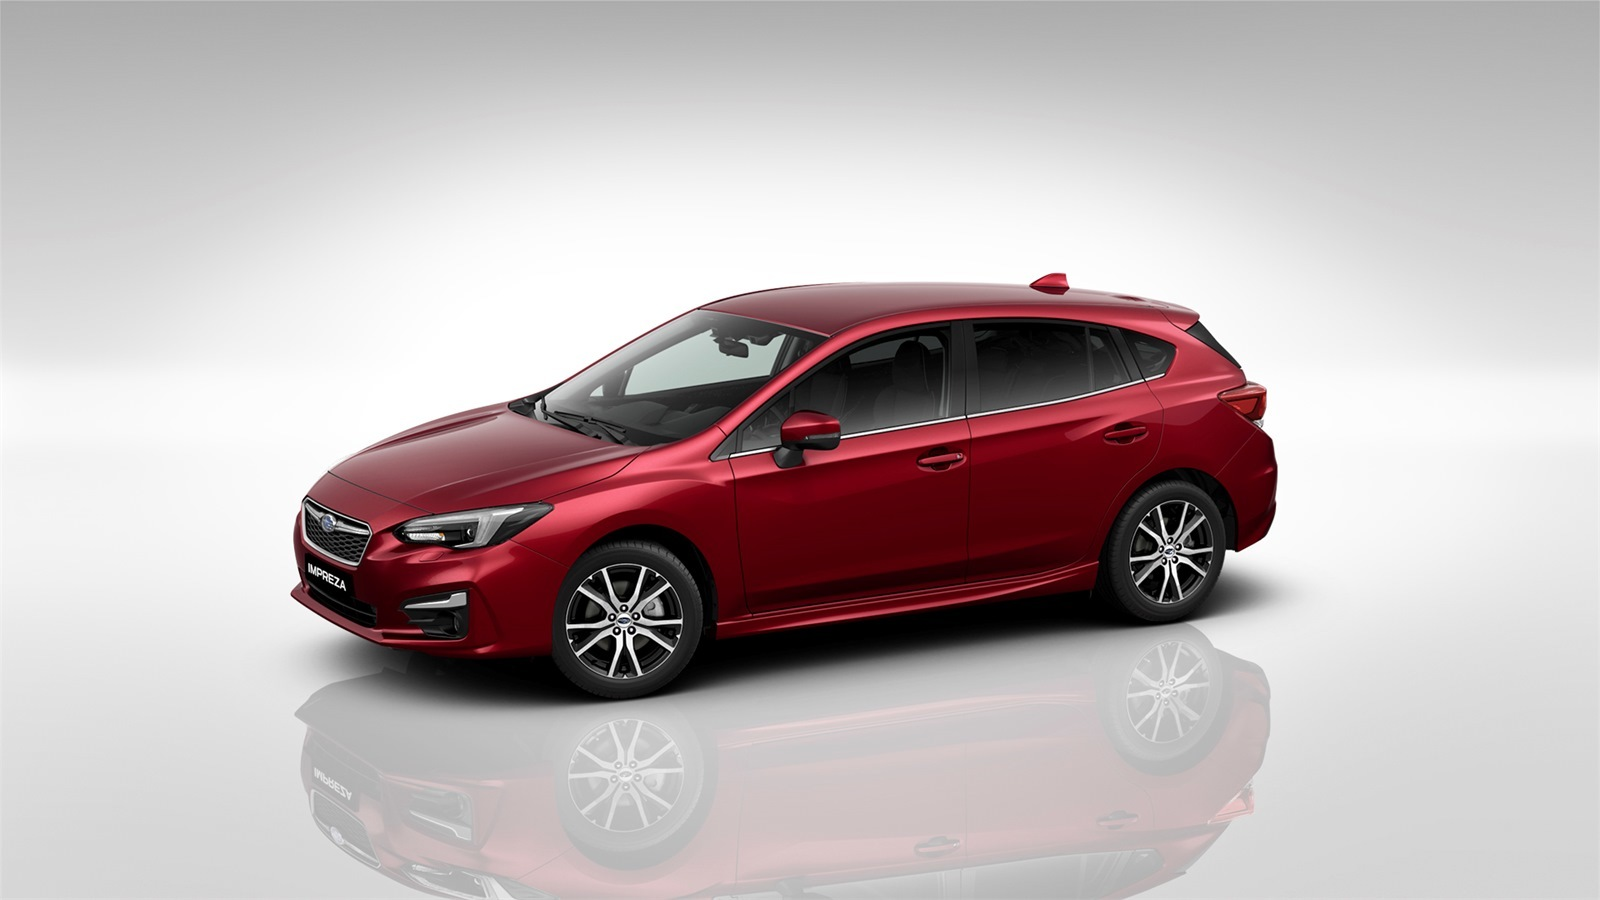 subaru impreza - Available in Venetian Red Pearl